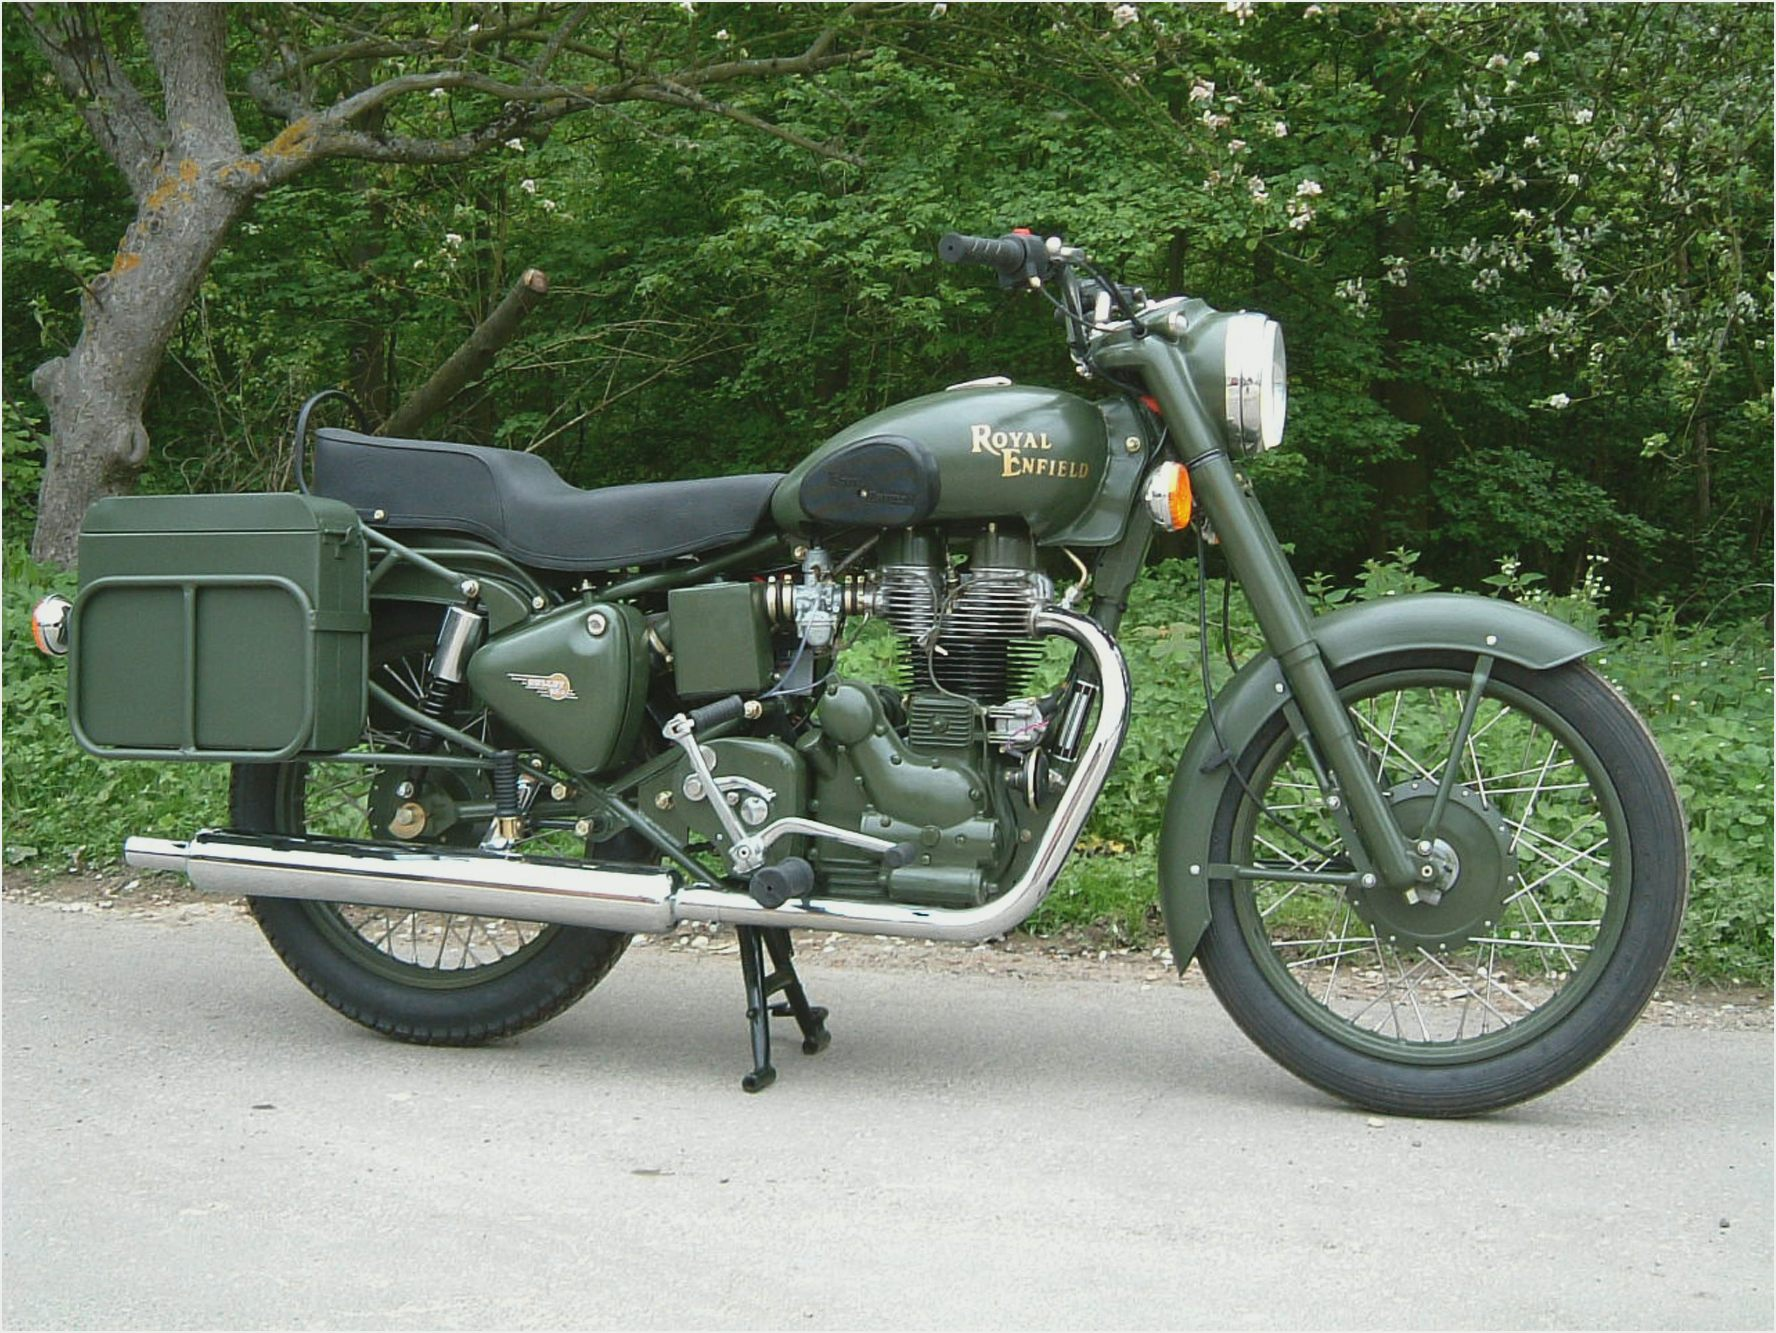 Royal Enfield Diesel 1997 images #122864